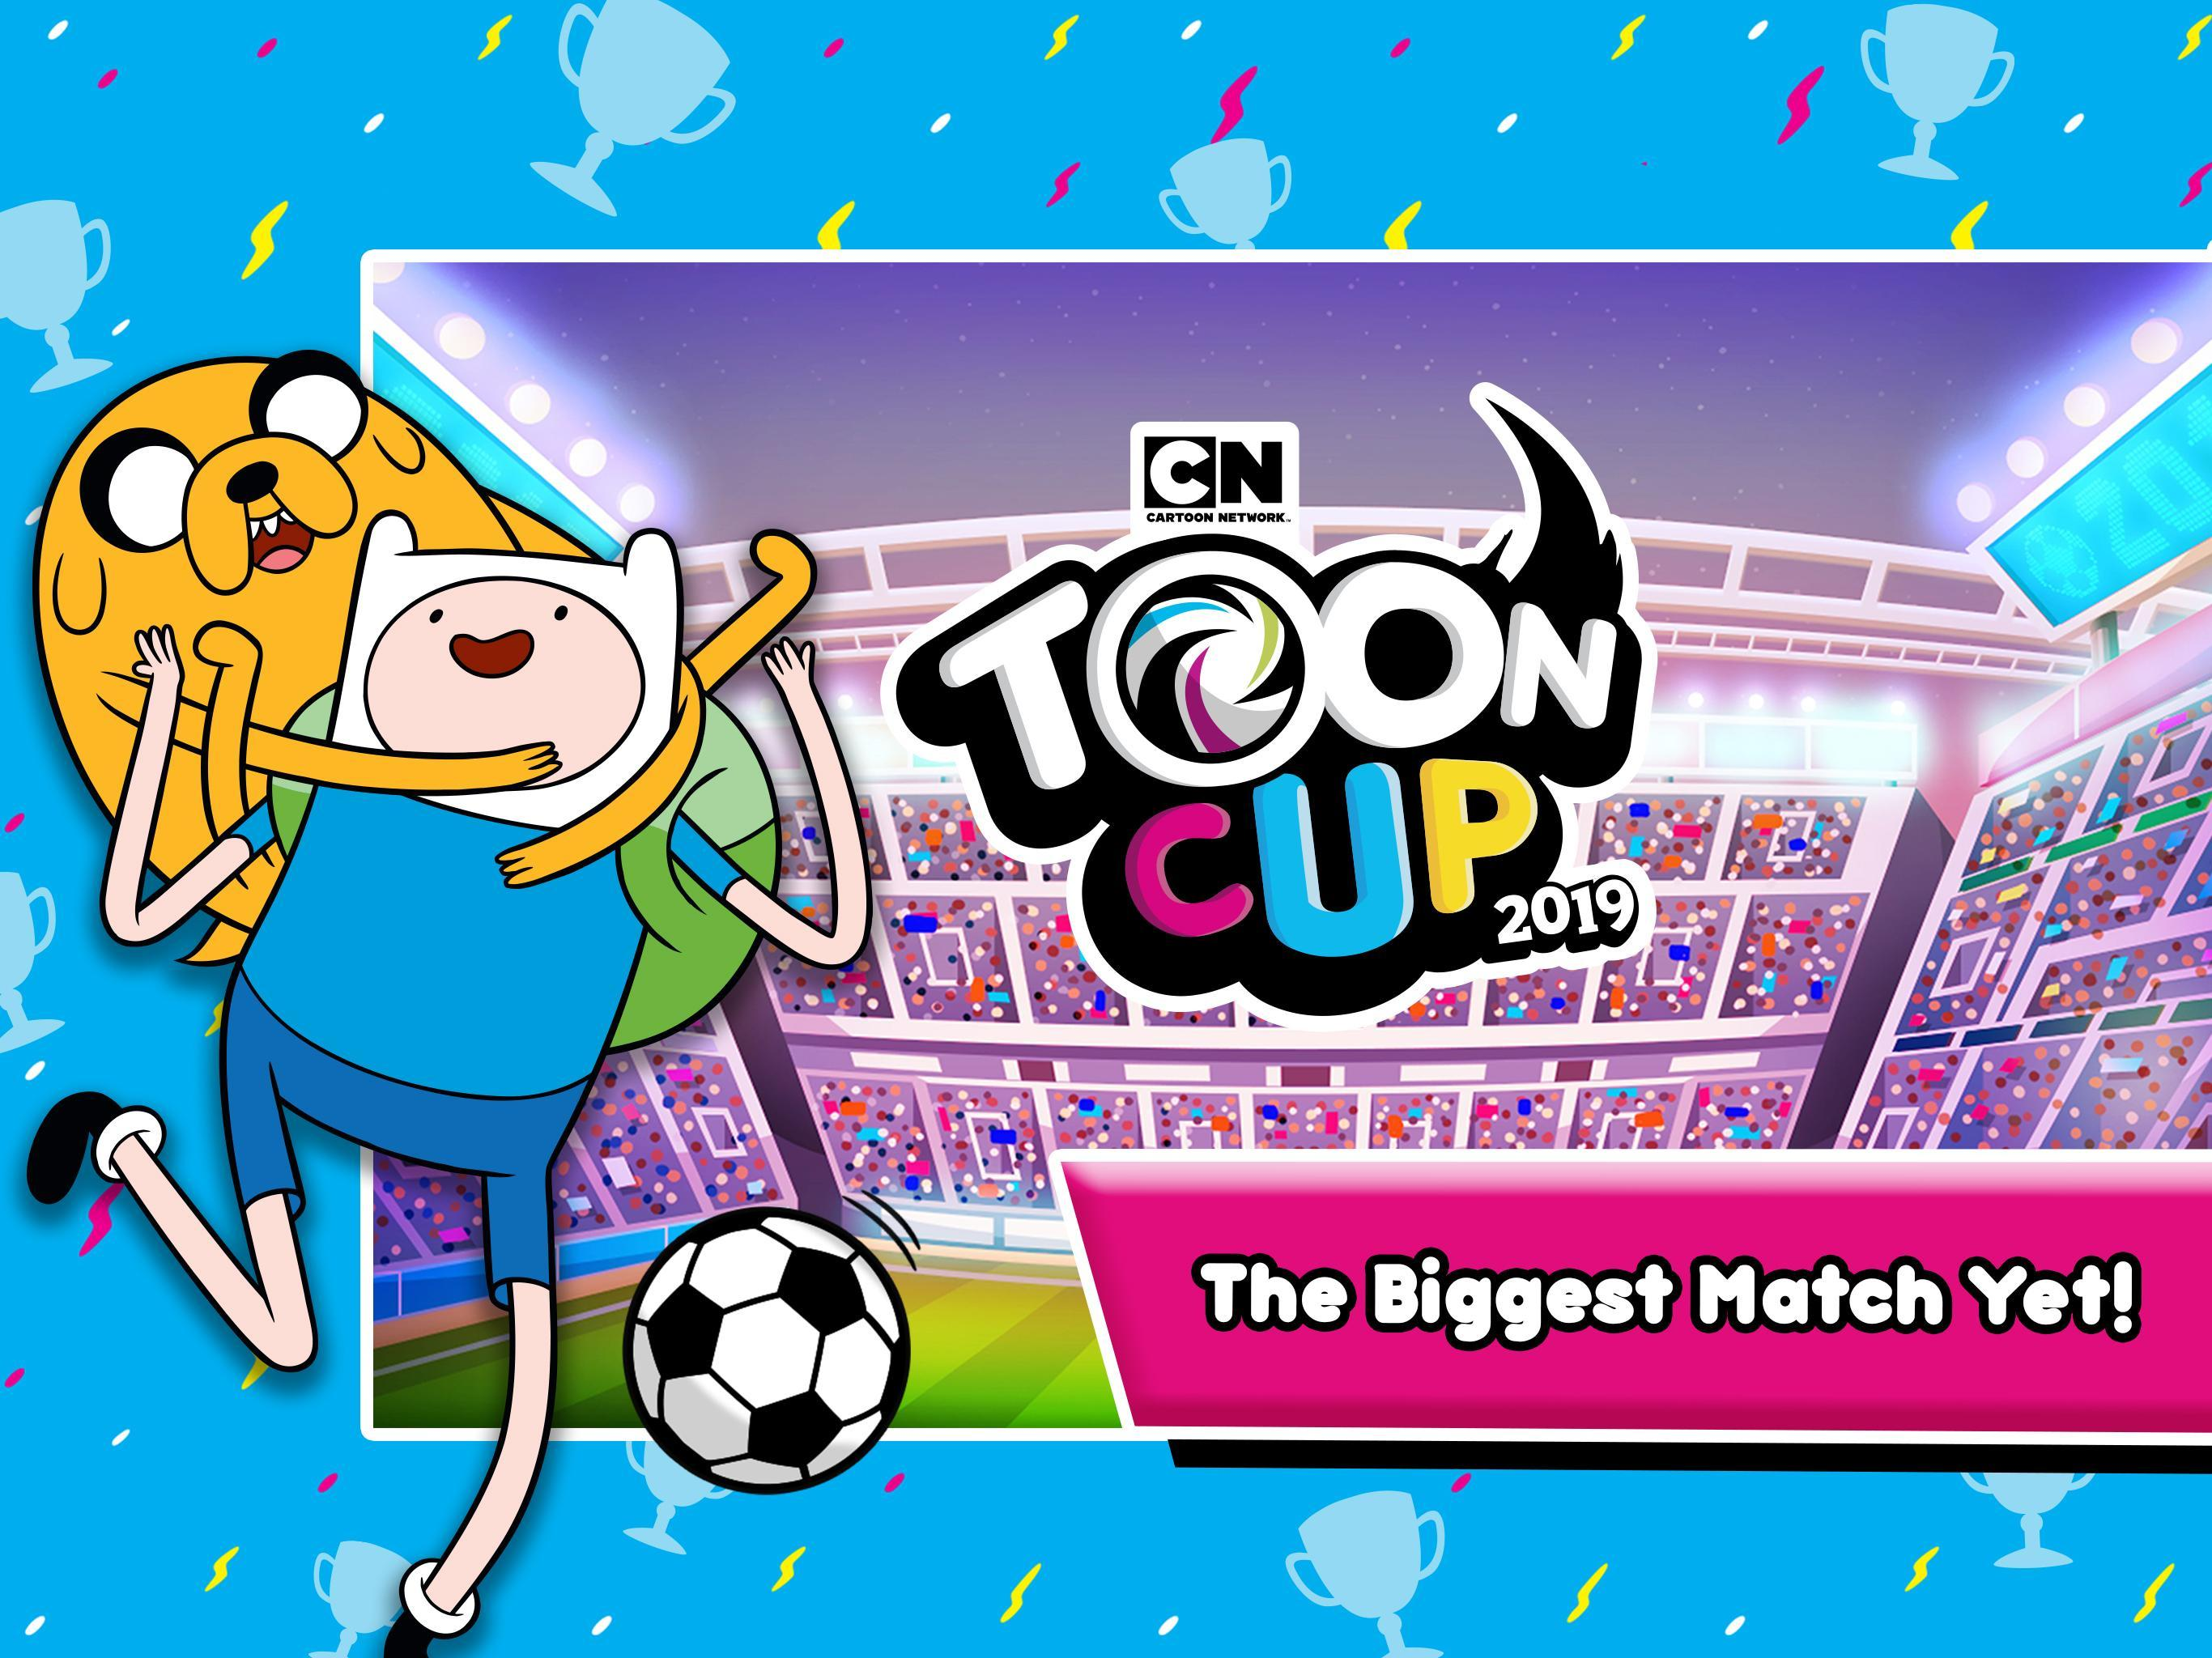 Toon Cup - Cartoon Network's Soccer Game for Android - APK